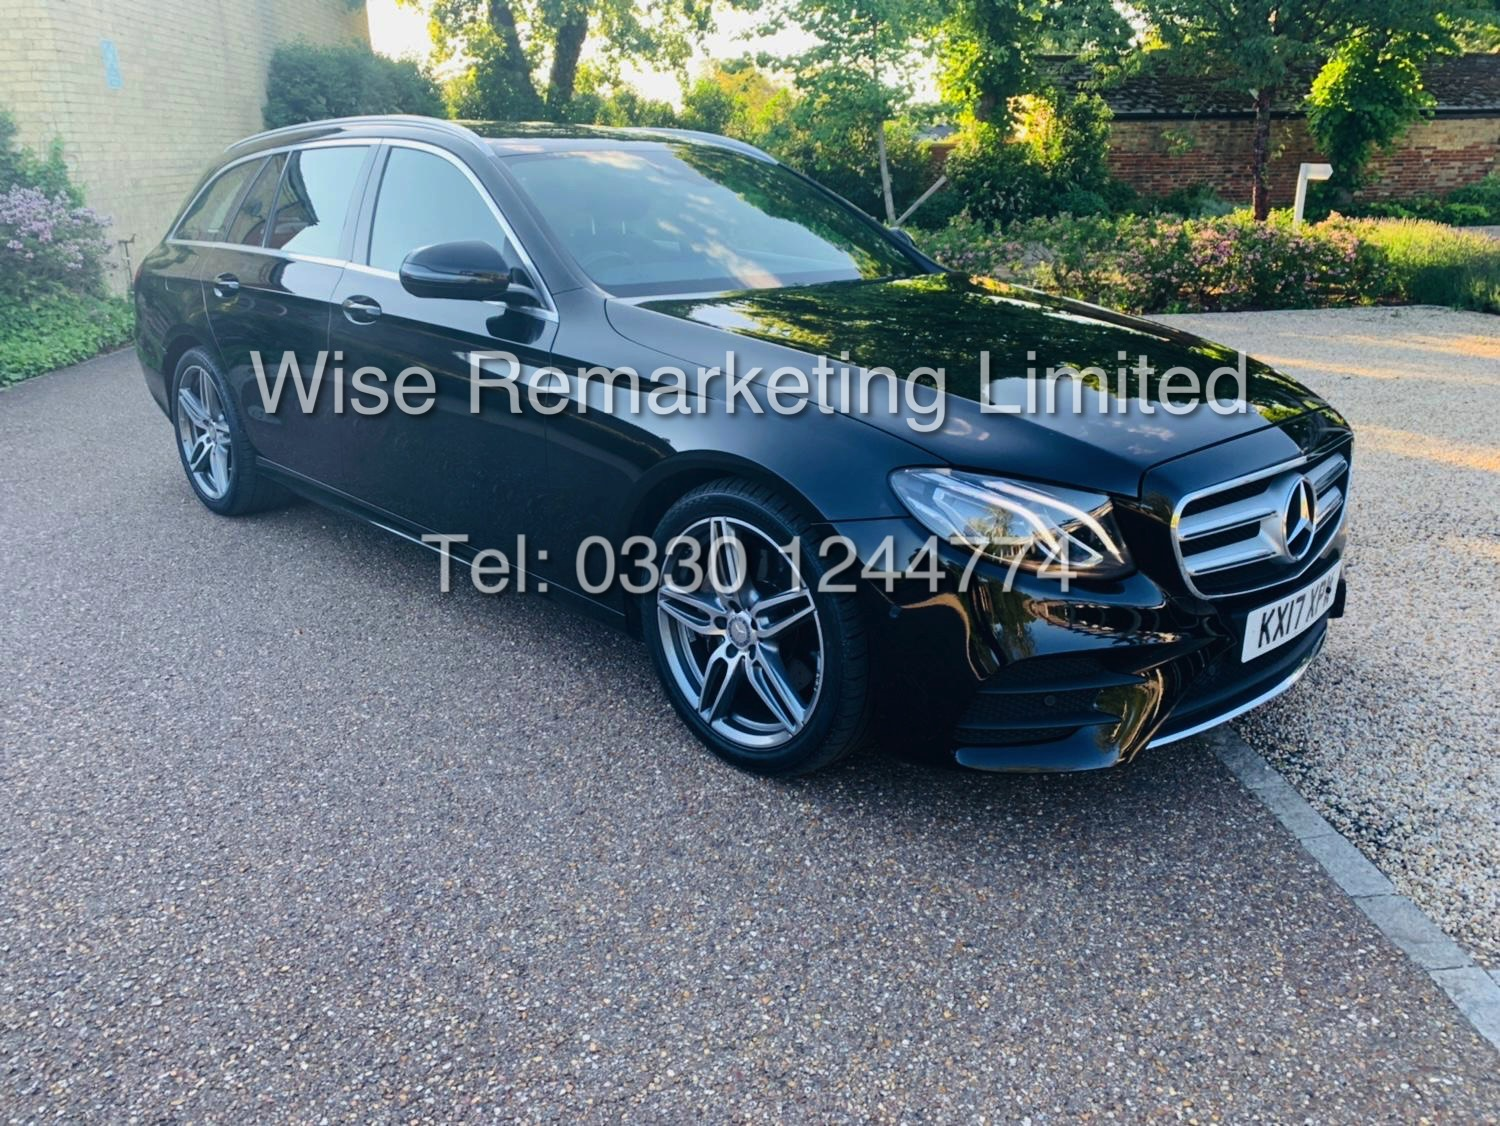 MERCEDES E CLASS ESTATE E220D AMG LINE 2017 / 9G -TRONIC / *LOW MILES* / 1 OWNER - Image 14 of 42